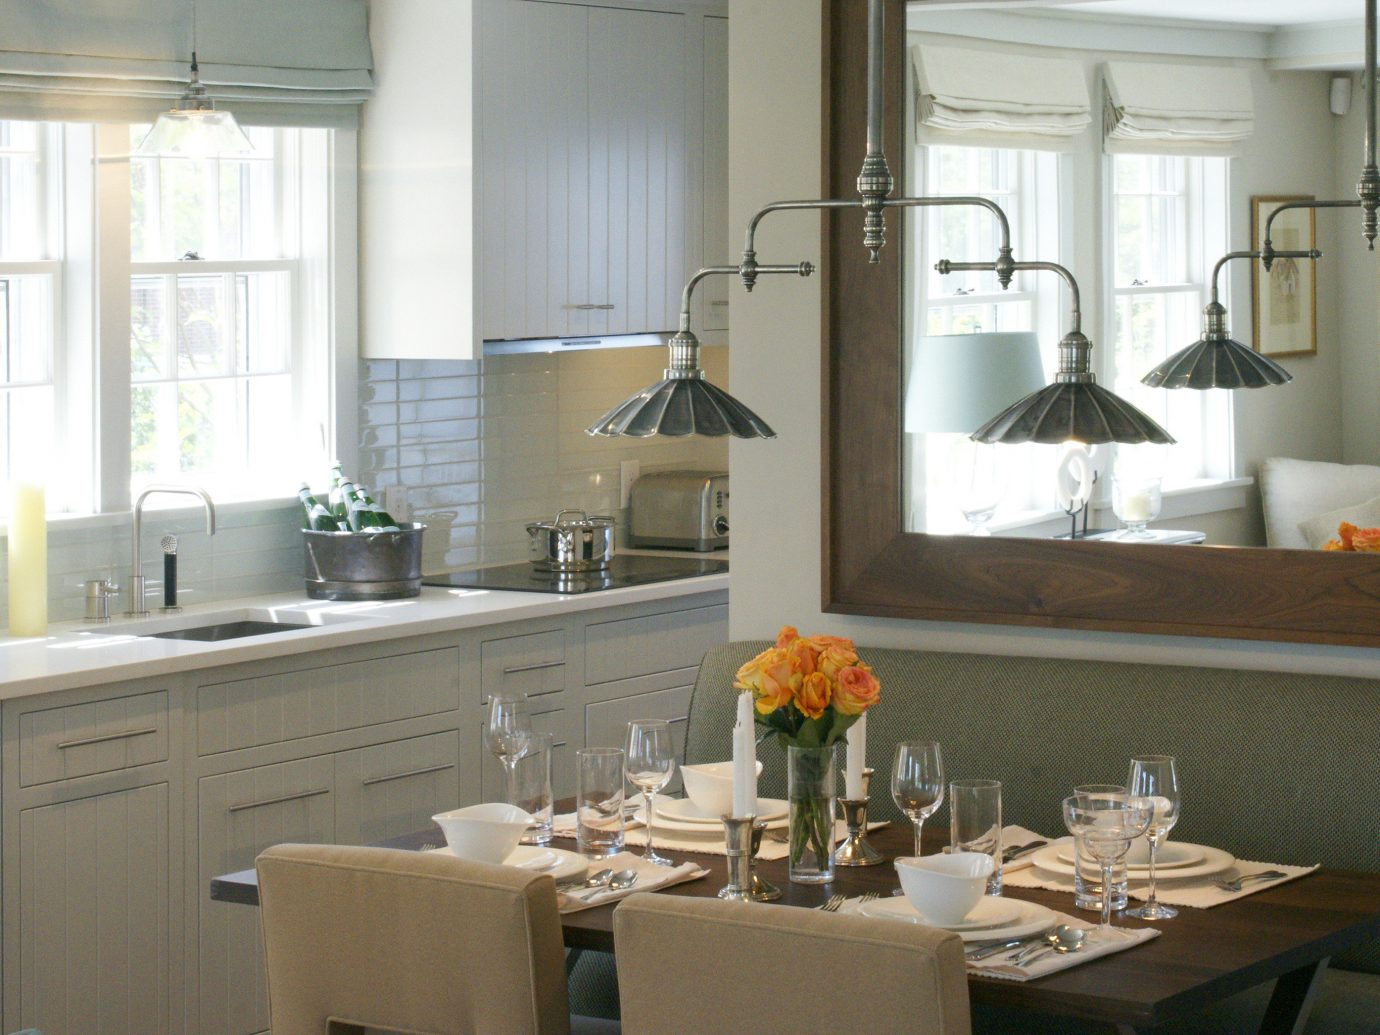 Boutique Boutique Hotels Dining Drink Eat Health + Wellness Hotels Inn Kitchen Lodge Trip Ideas Waterfront indoor window room property dining room home counter cabinetry countertop interior design floor sink lighting estate cottage Design real estate living room apartment cluttered Island